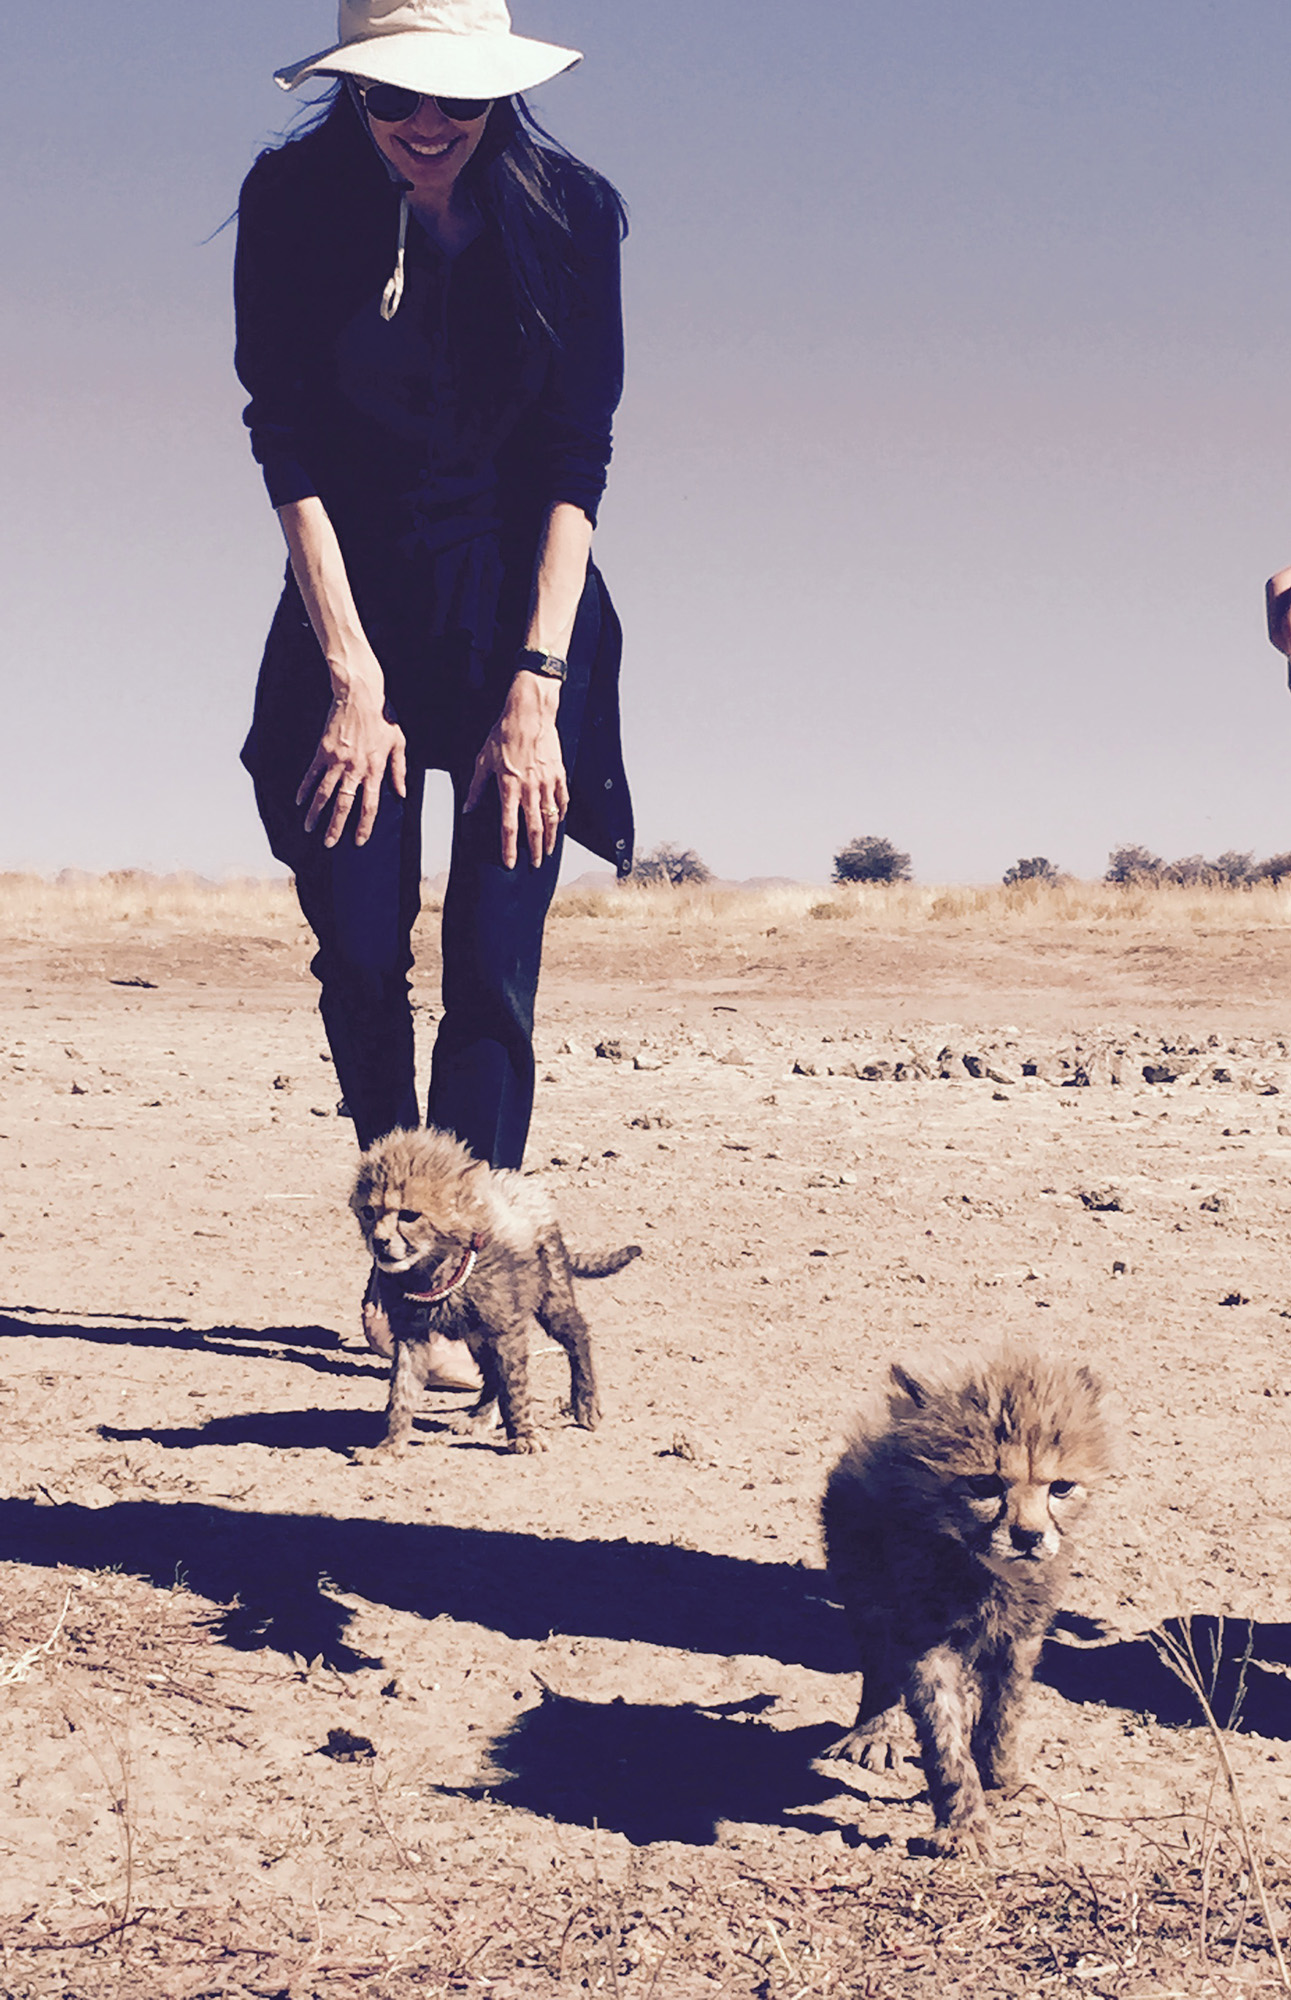 F:PHOTOMediaFactory ActionsRequests DropBox47865#JolieAngie-with-cubs.jpg